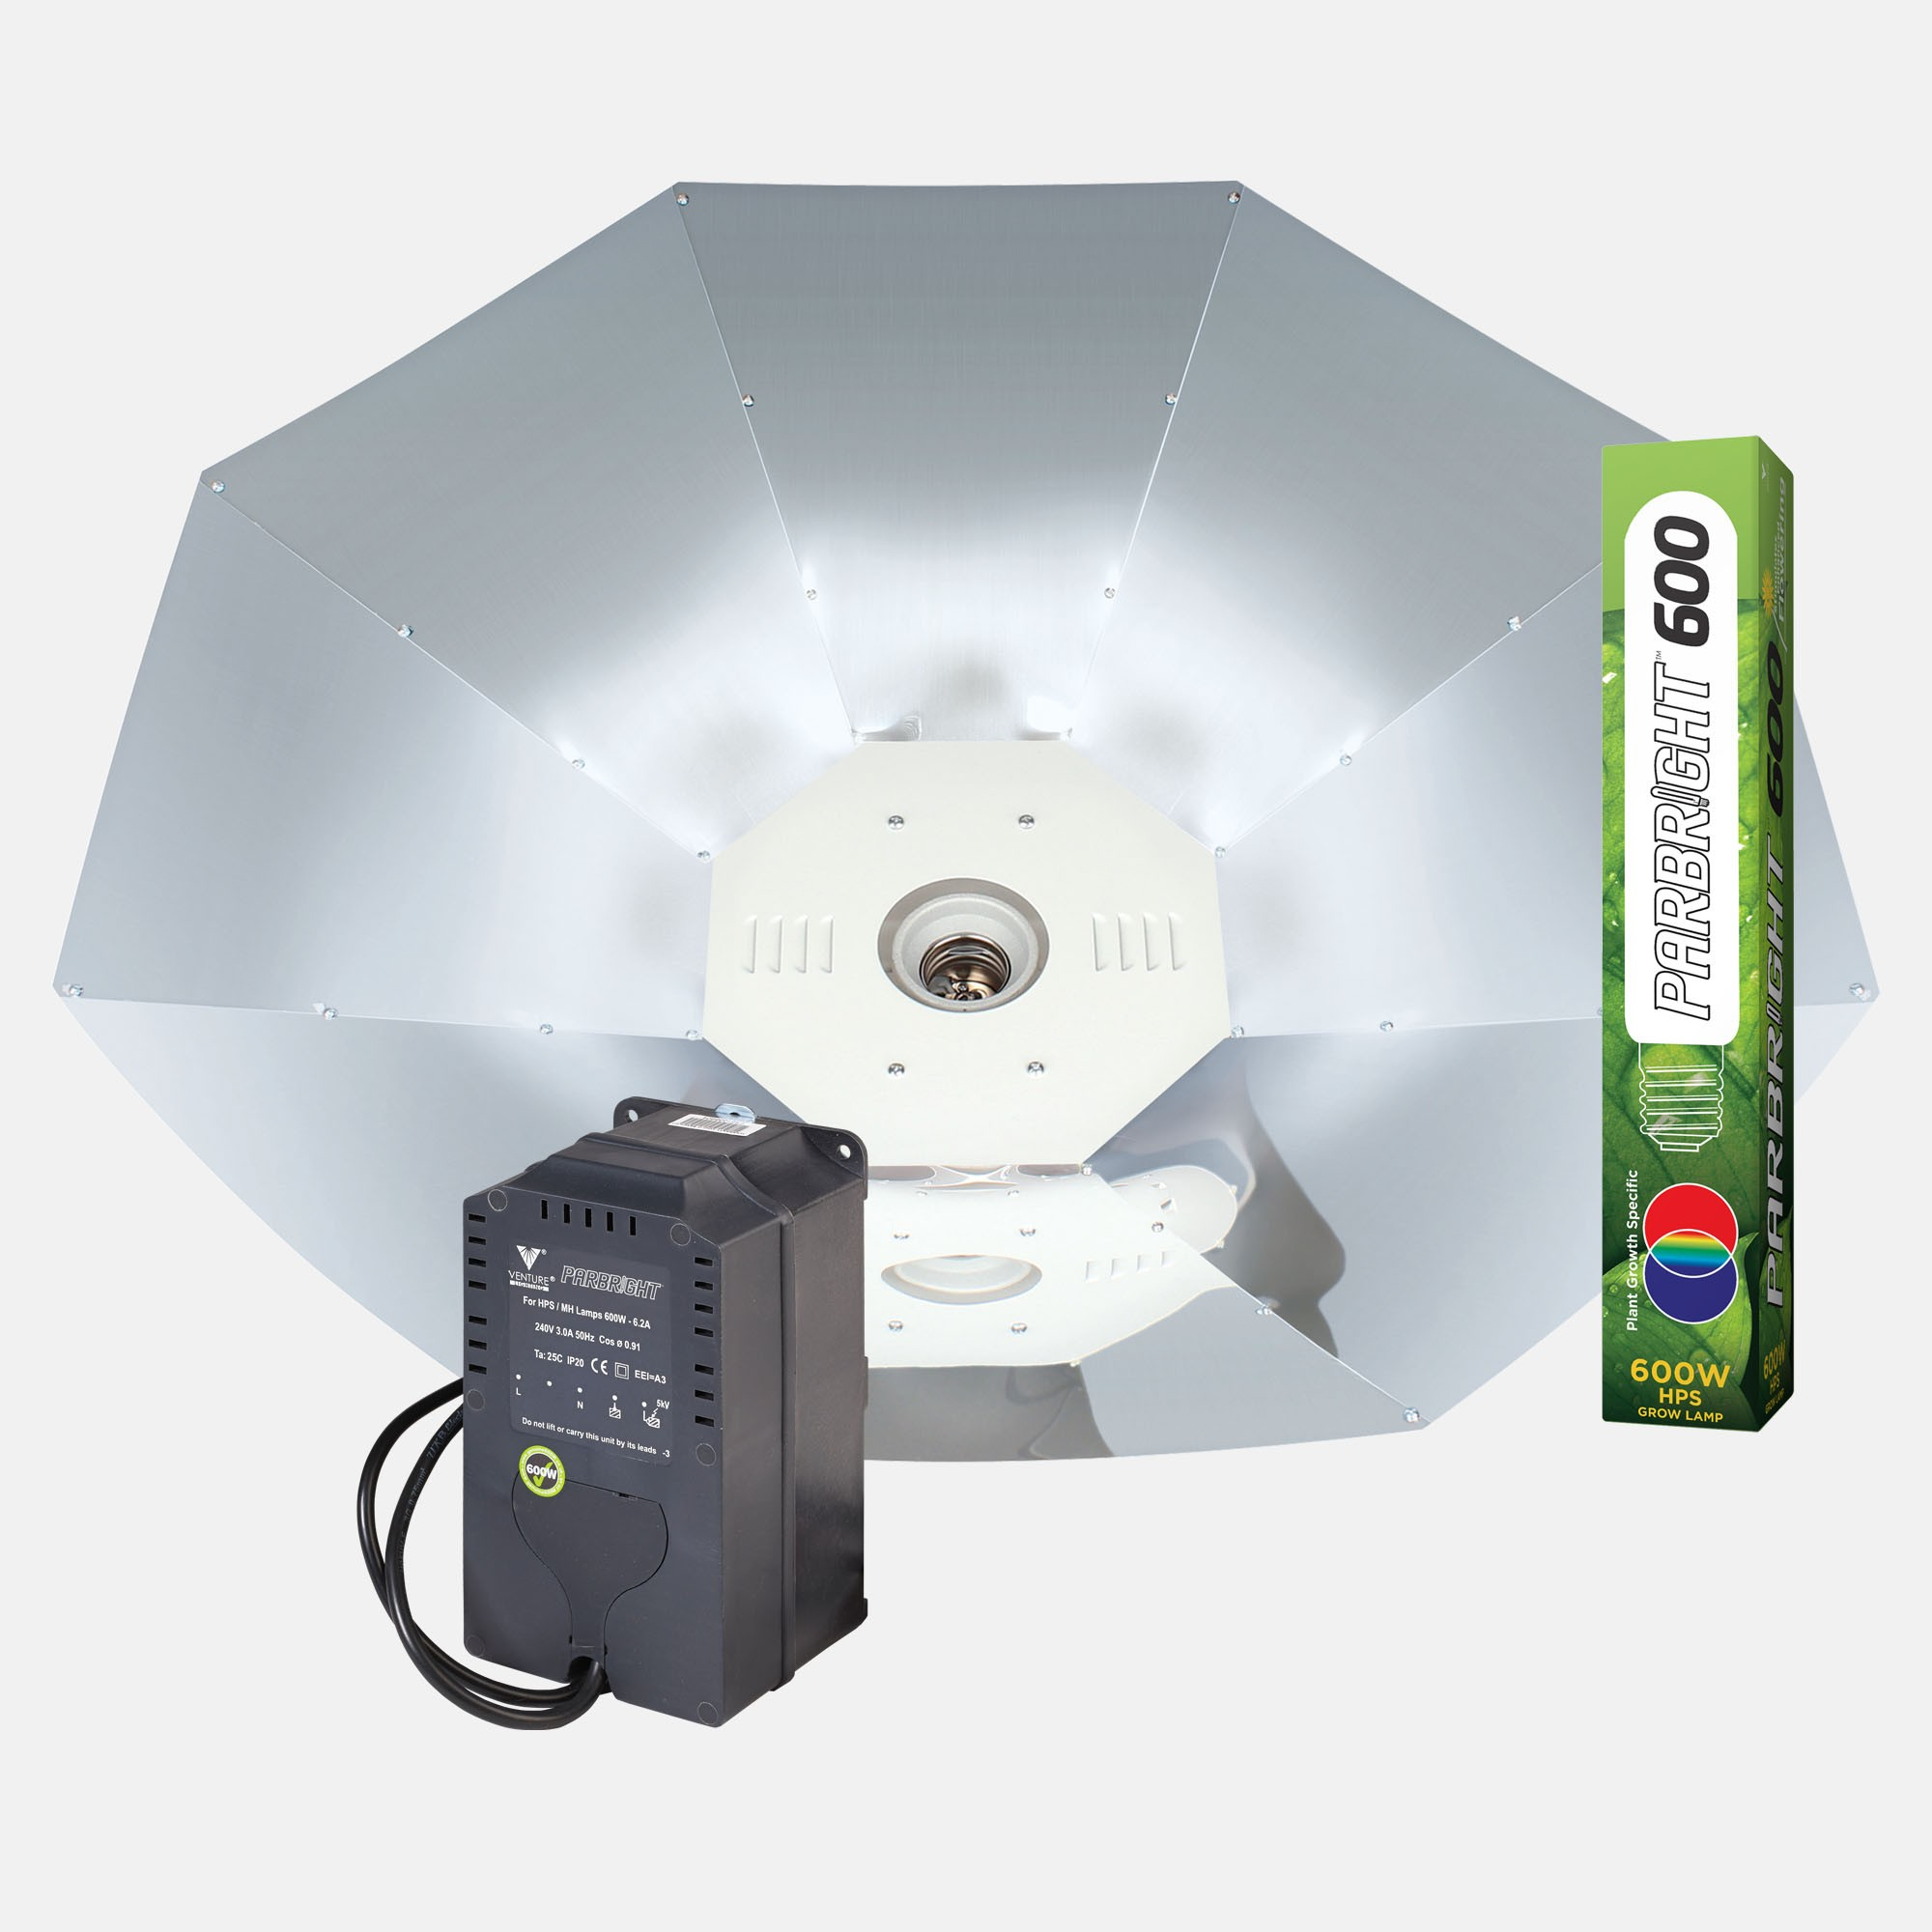 Parbright 600W Parabolic Kits